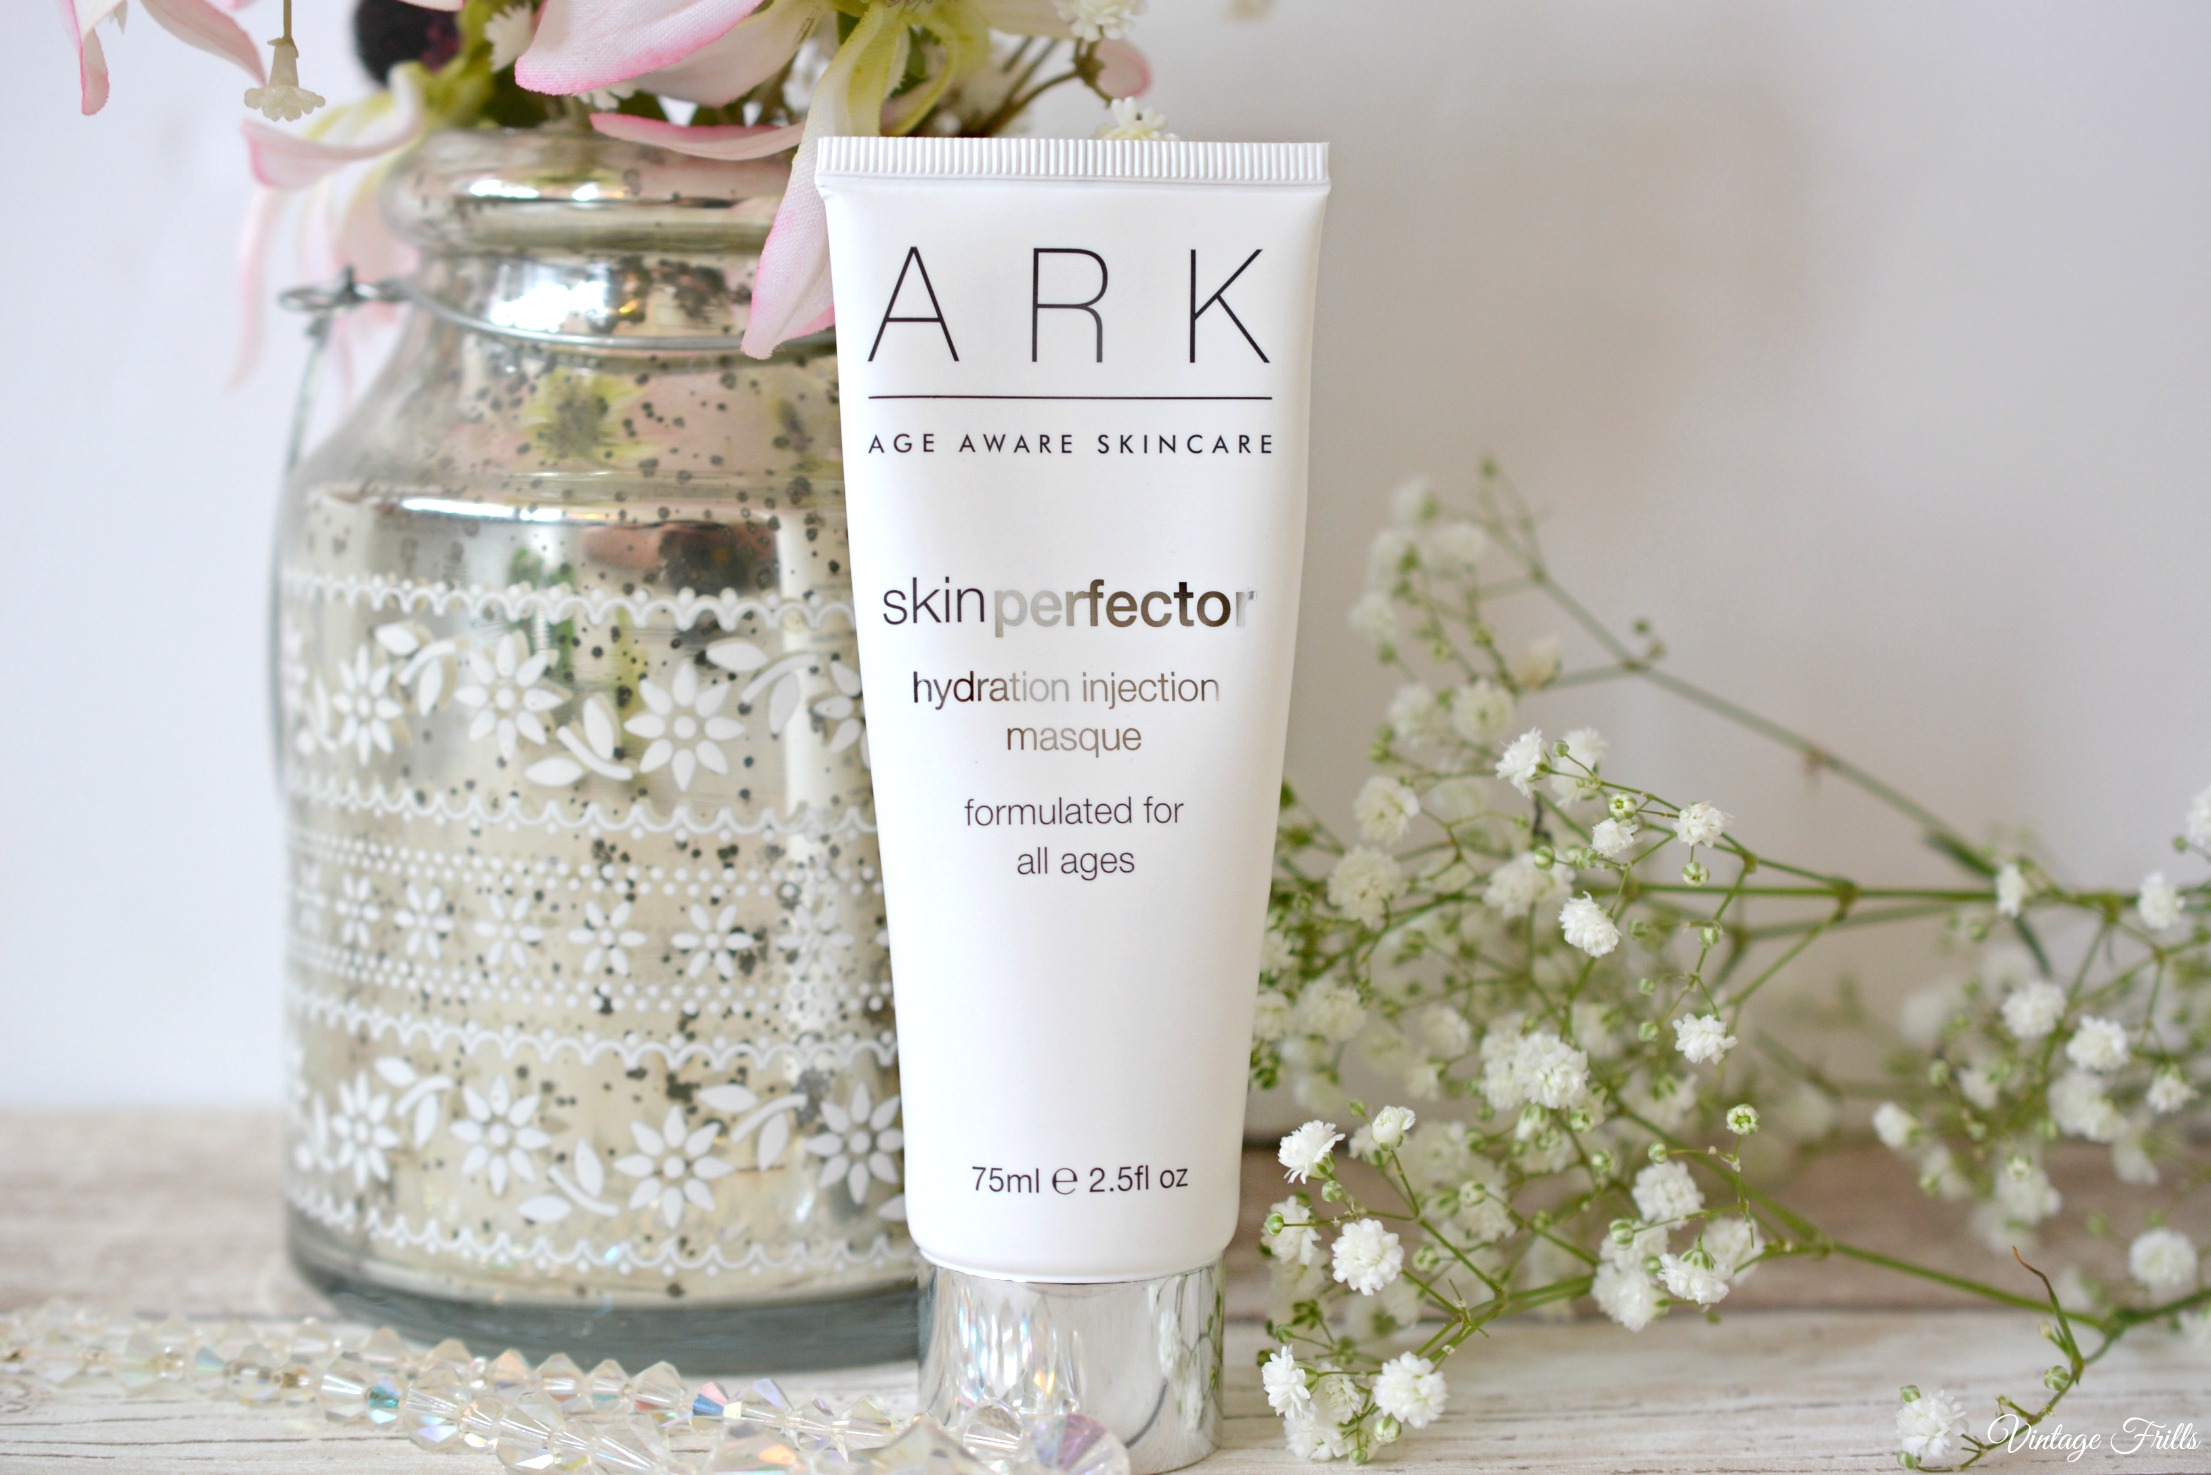 ARK Skin Perfector Hydration Injection Masque Review